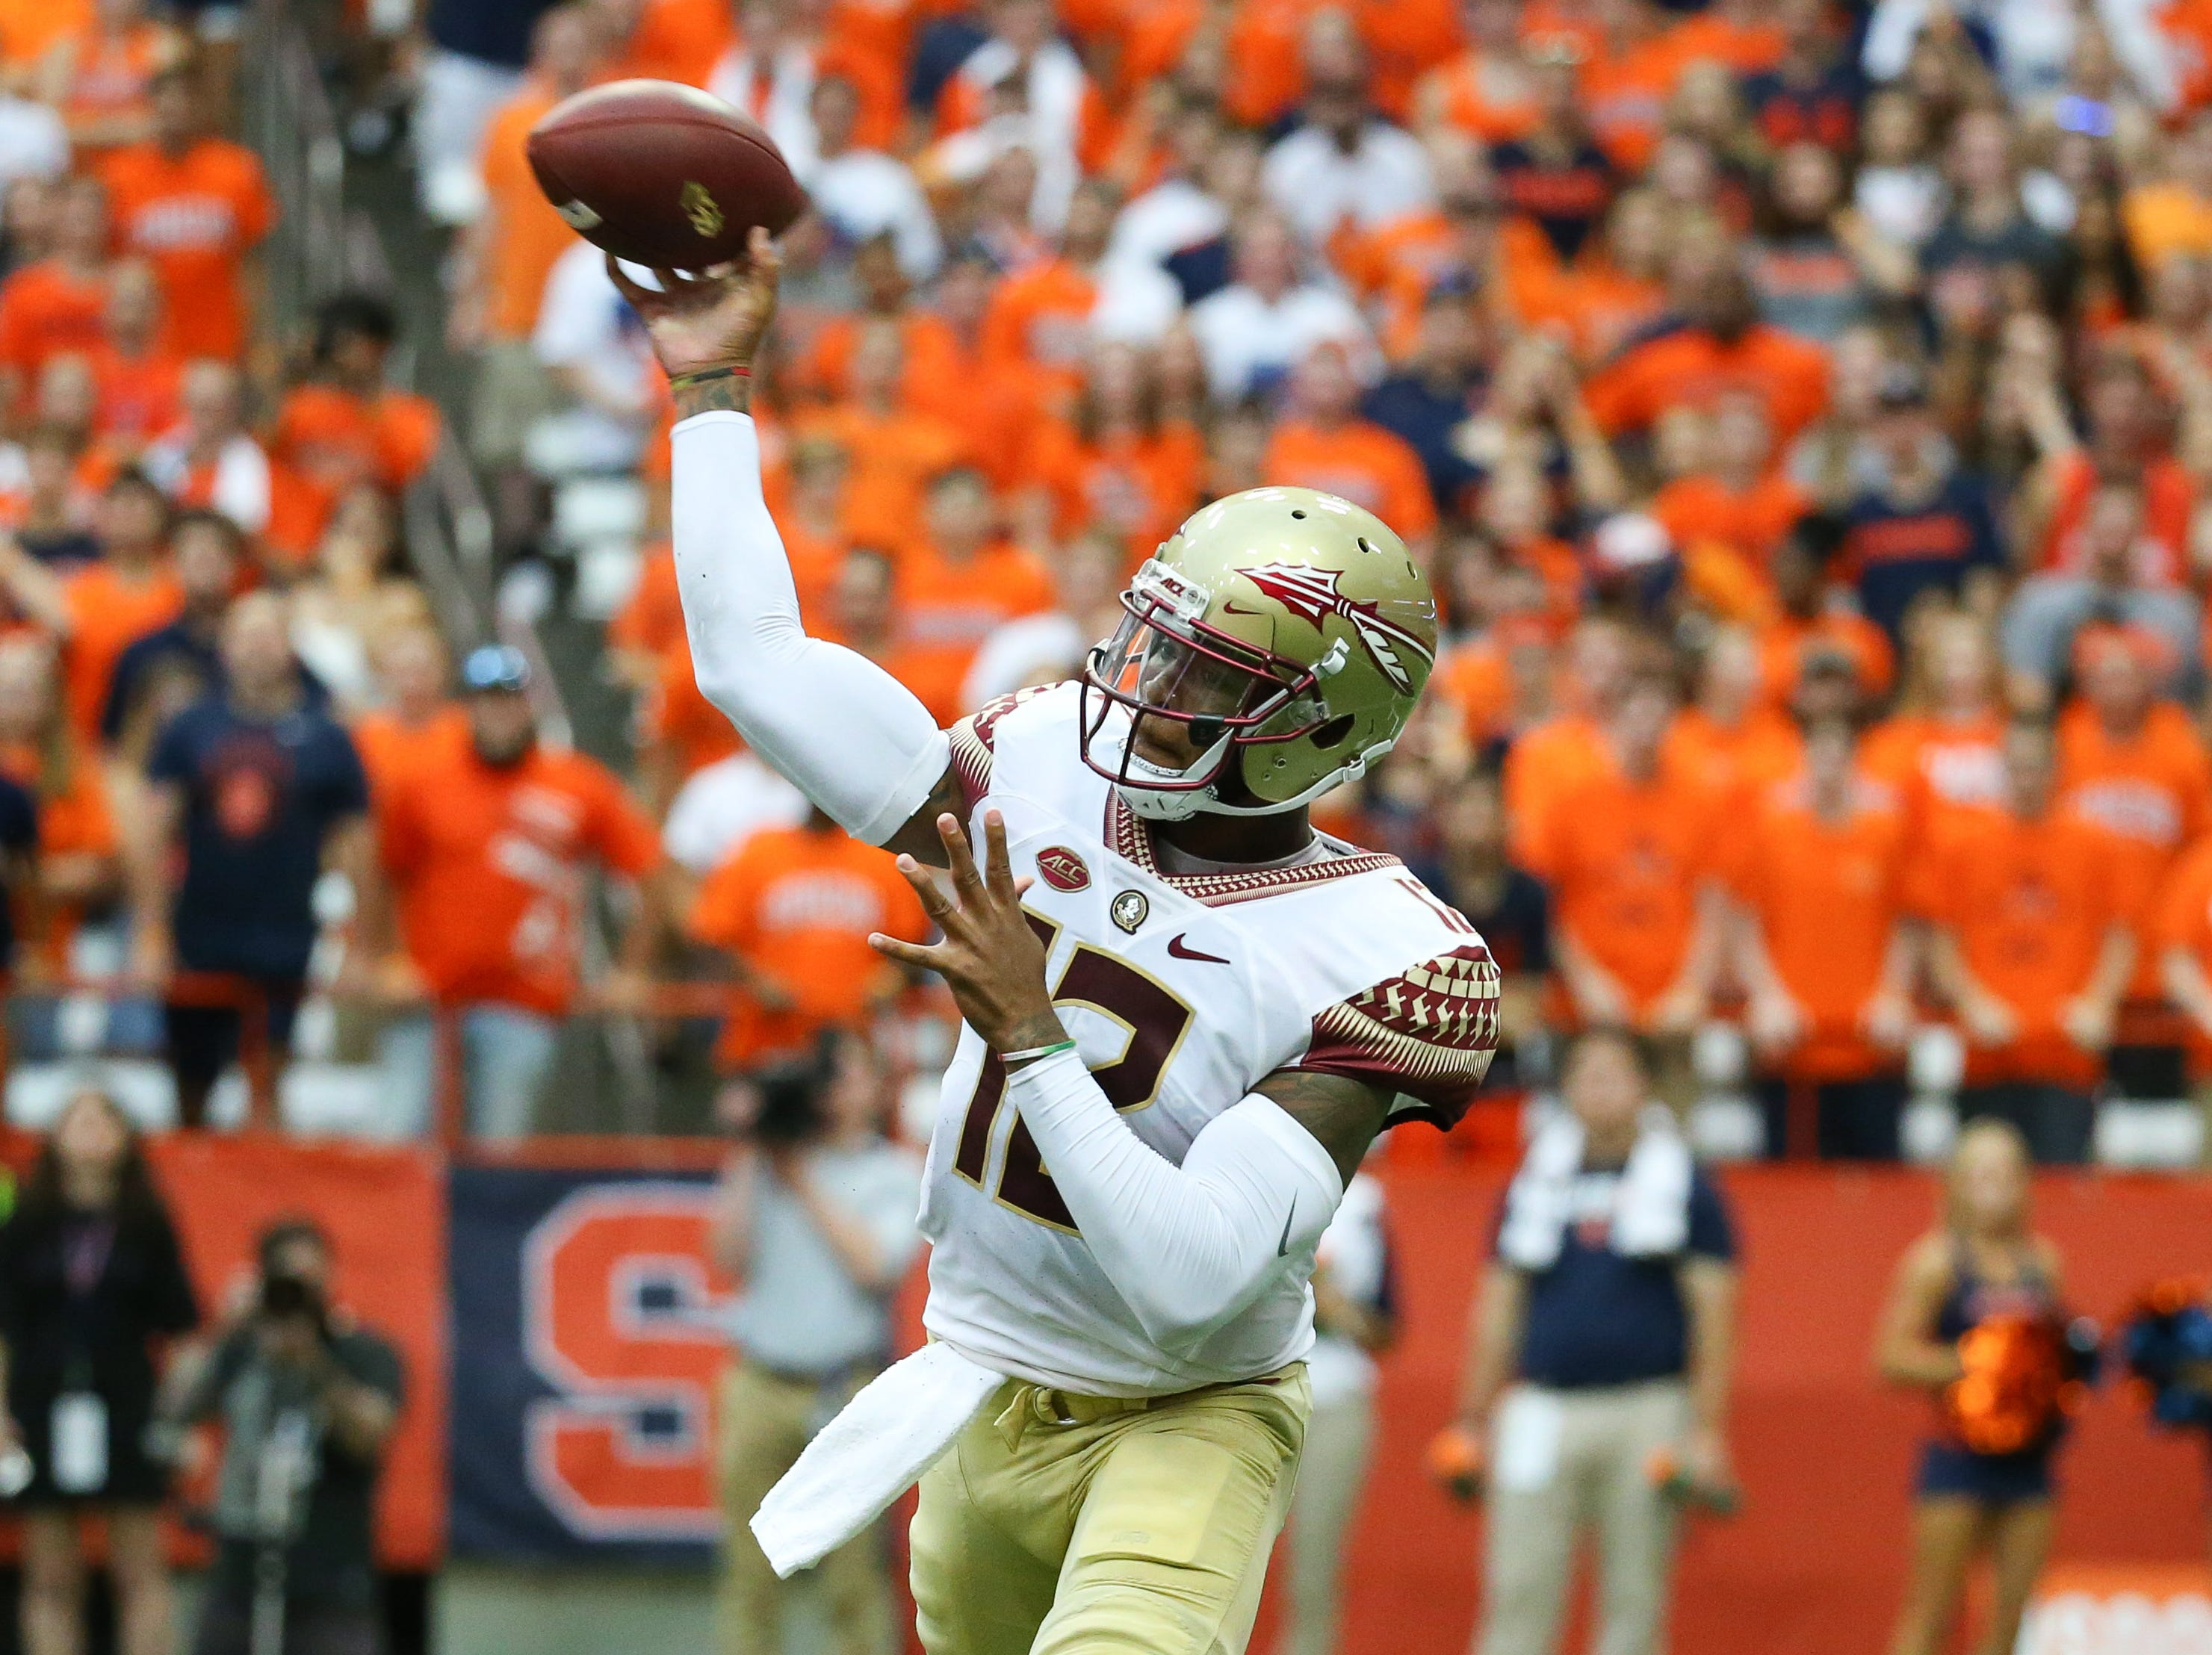 Sep 15, 2018; Syracuse, NY, USA; Florida State Seminoles quarterback Deondre Francois (12) passes the ball against the Syracuse Orange during the first quarter at the Carrier Dome. Mandatory Credit: Rich Barnes-USA TODAY Sports